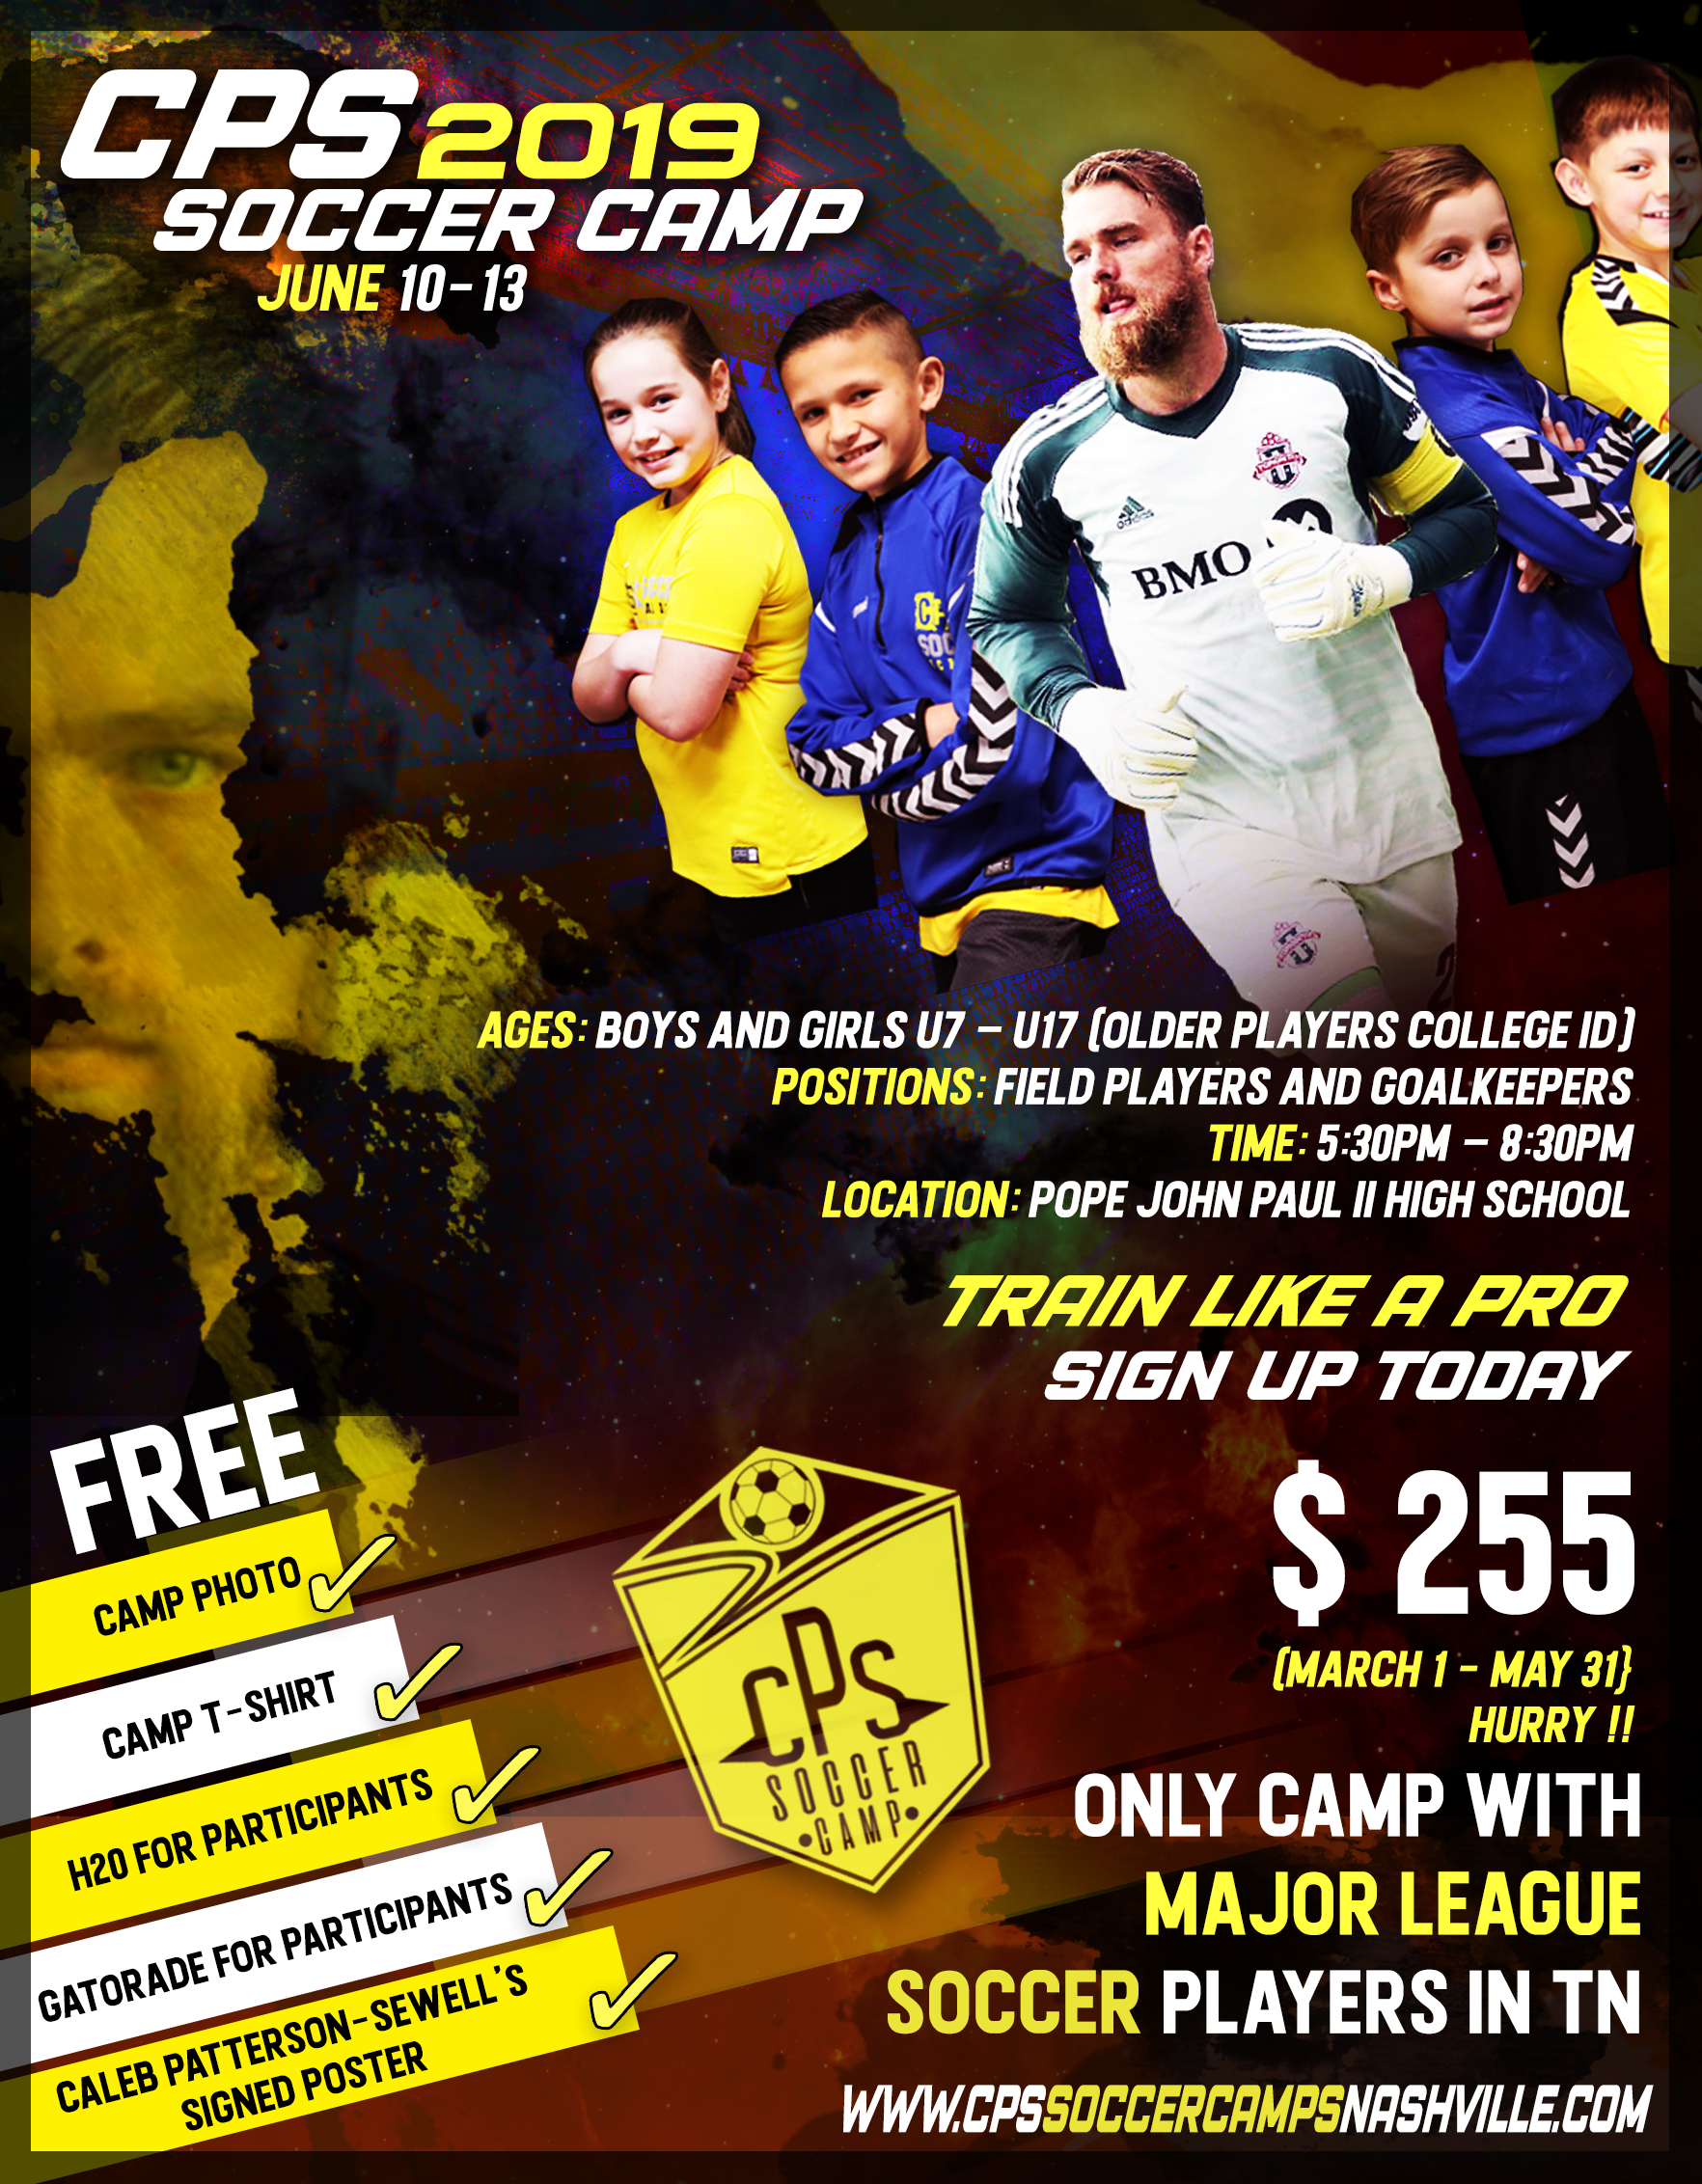 CPS Soccer Camp - CPS Soccer Camp 2019 is hosting their annual soccer camp featuring Major League Soccer players June 10-13. The staff will also feature coaches from Champions League teams in Europe. The camp will allow players to experience what it is like to be in a professional environment throughout the week. Click on the image for more information!